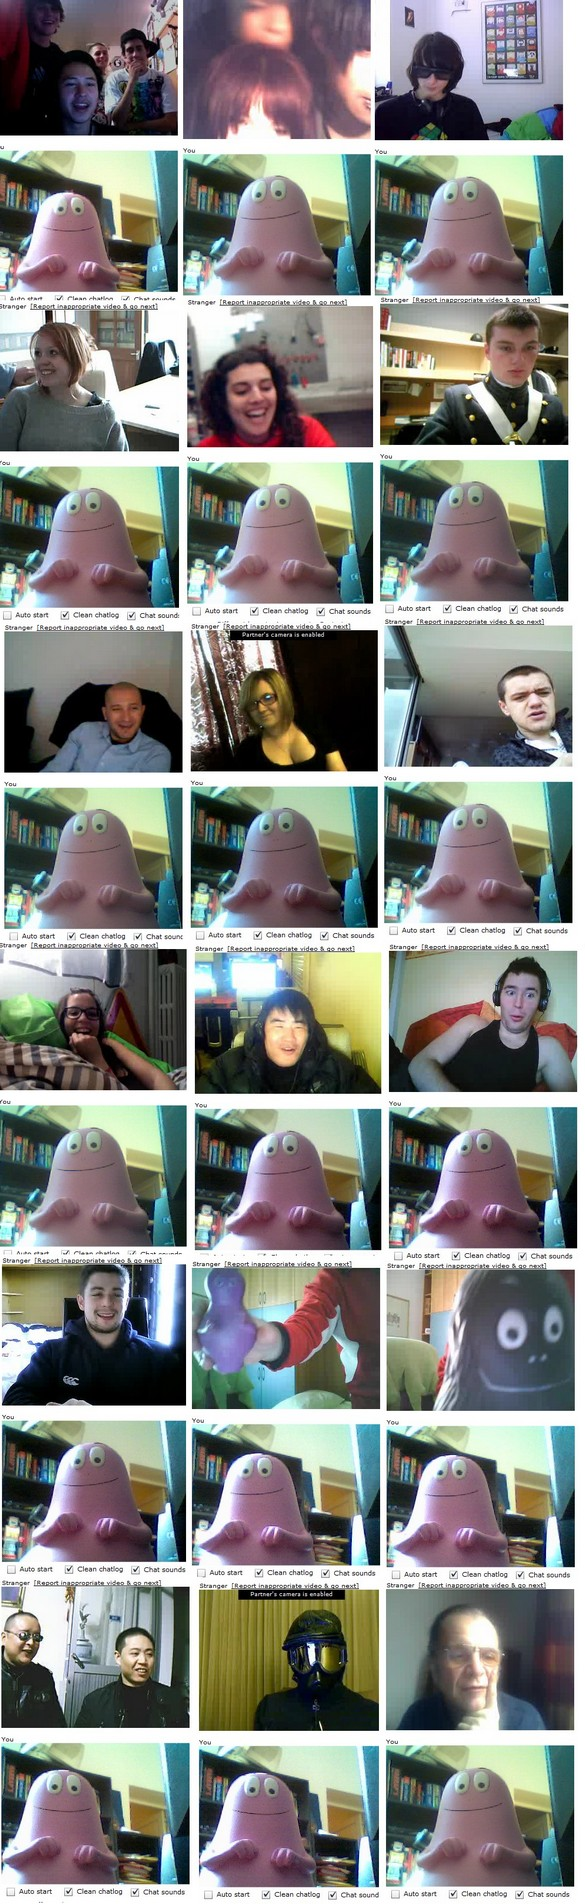 chat-roulette-best-of